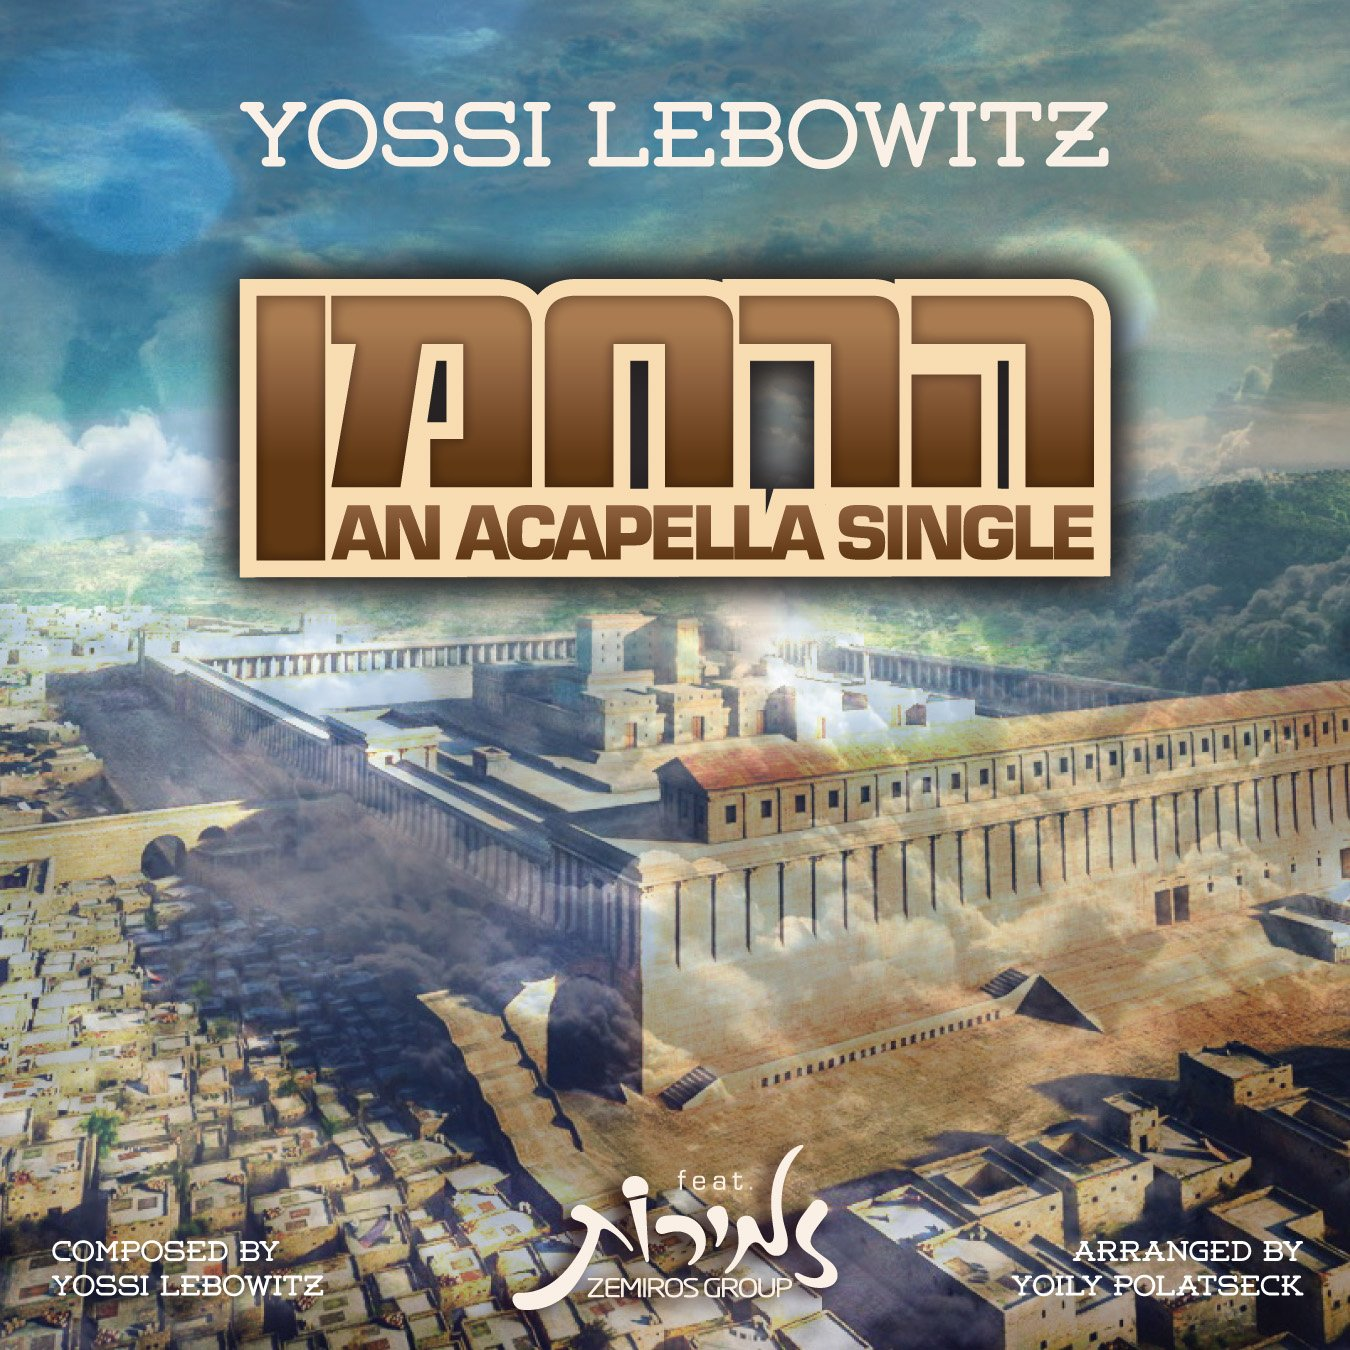 Yossi Lebowitz - Horachamon (Acapella) feat. Zemiros Group